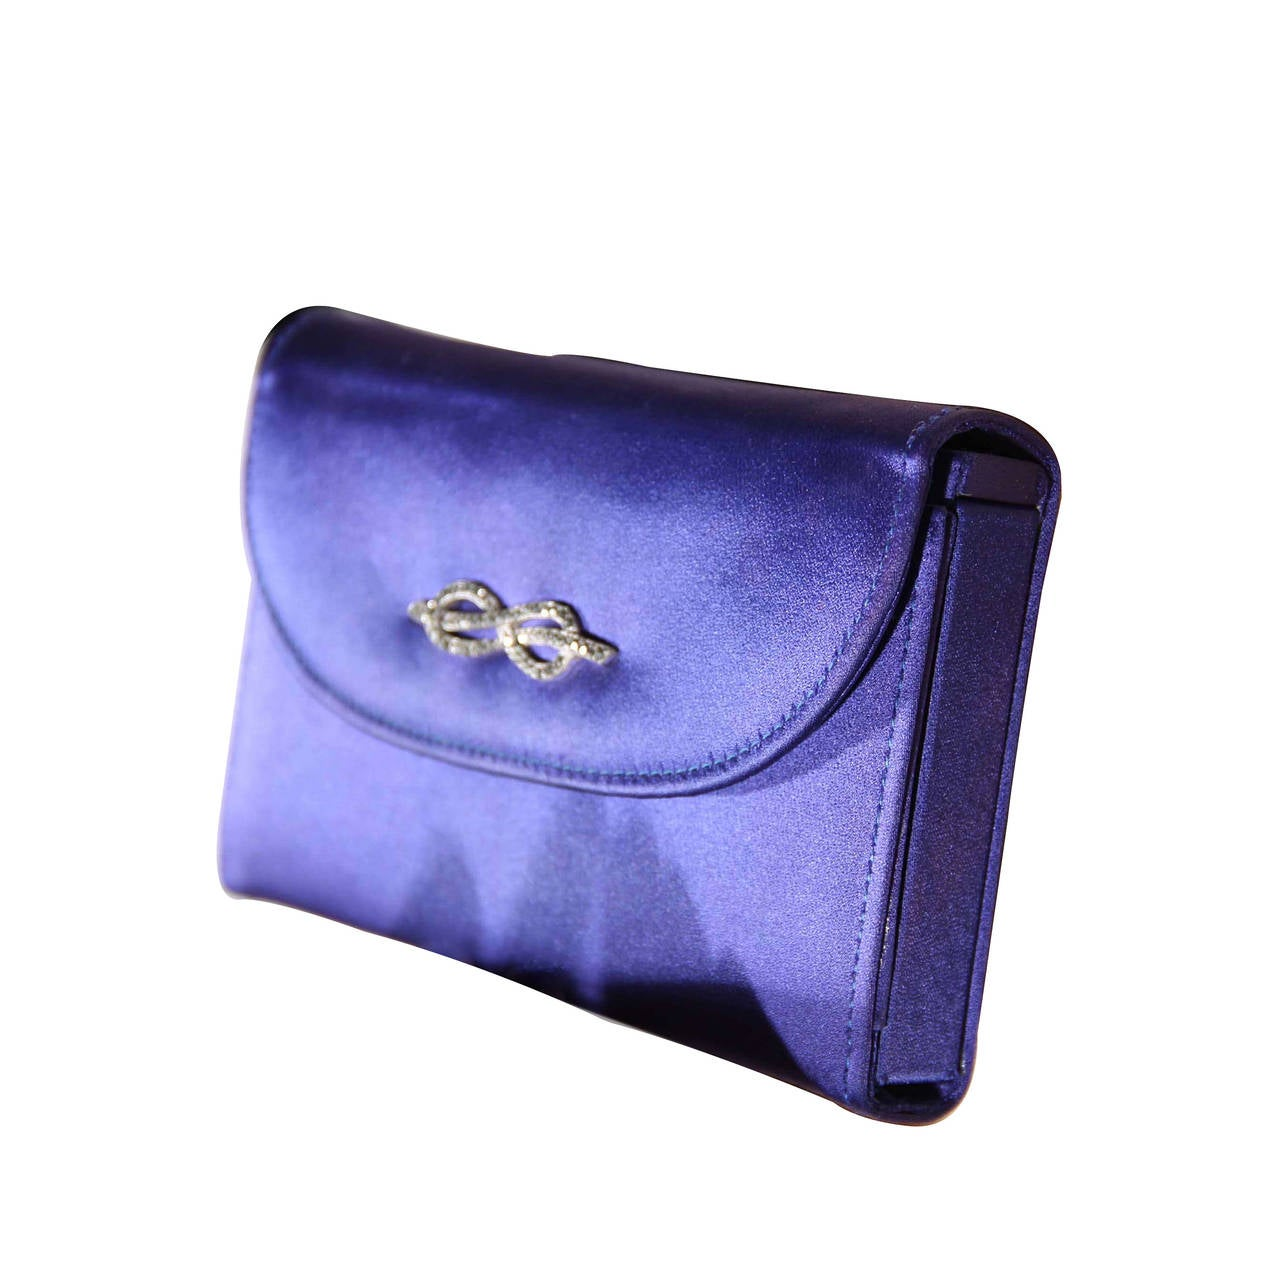 Gucci Italian Vintage Blue Satin Minaudiere Evening Bag